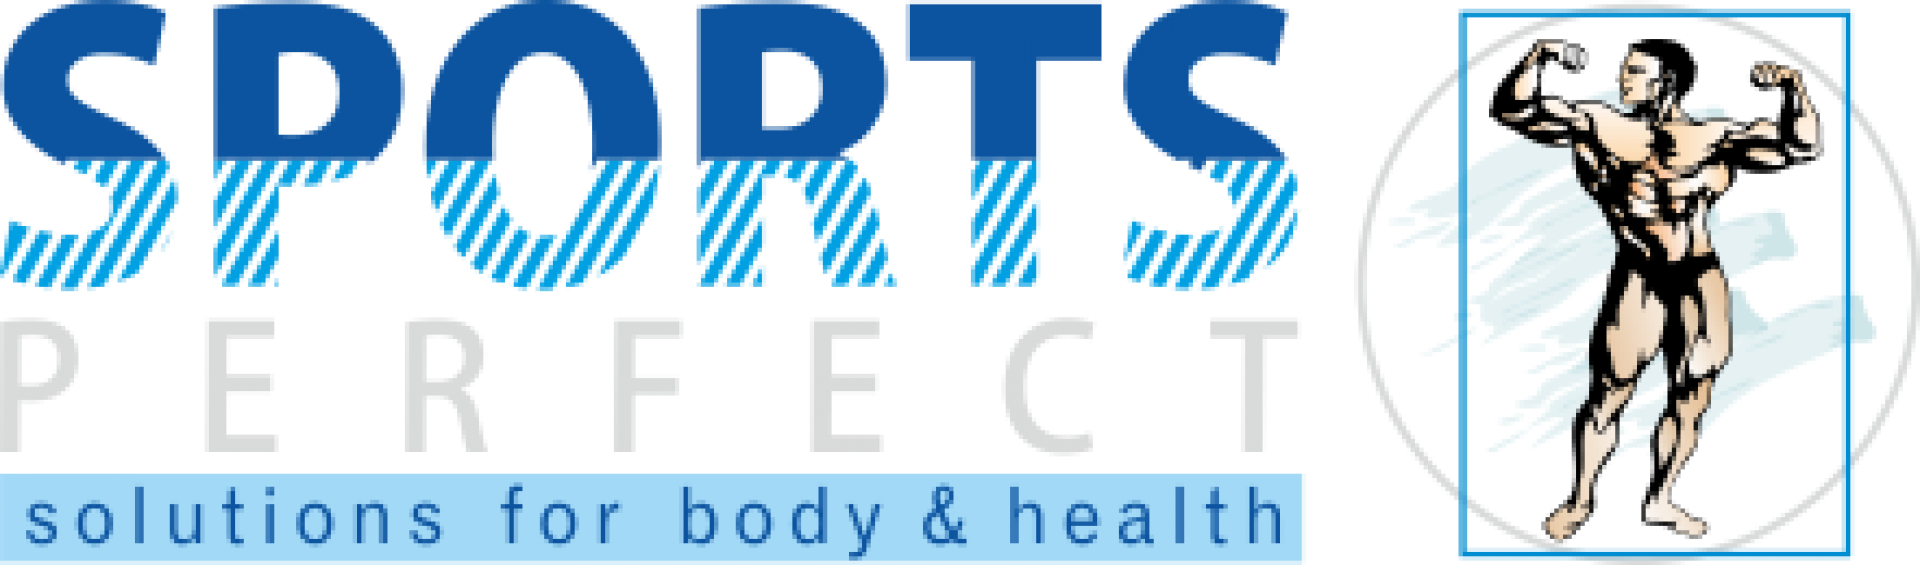 Sports Perfect | Worldwide Solutions for Body and Health